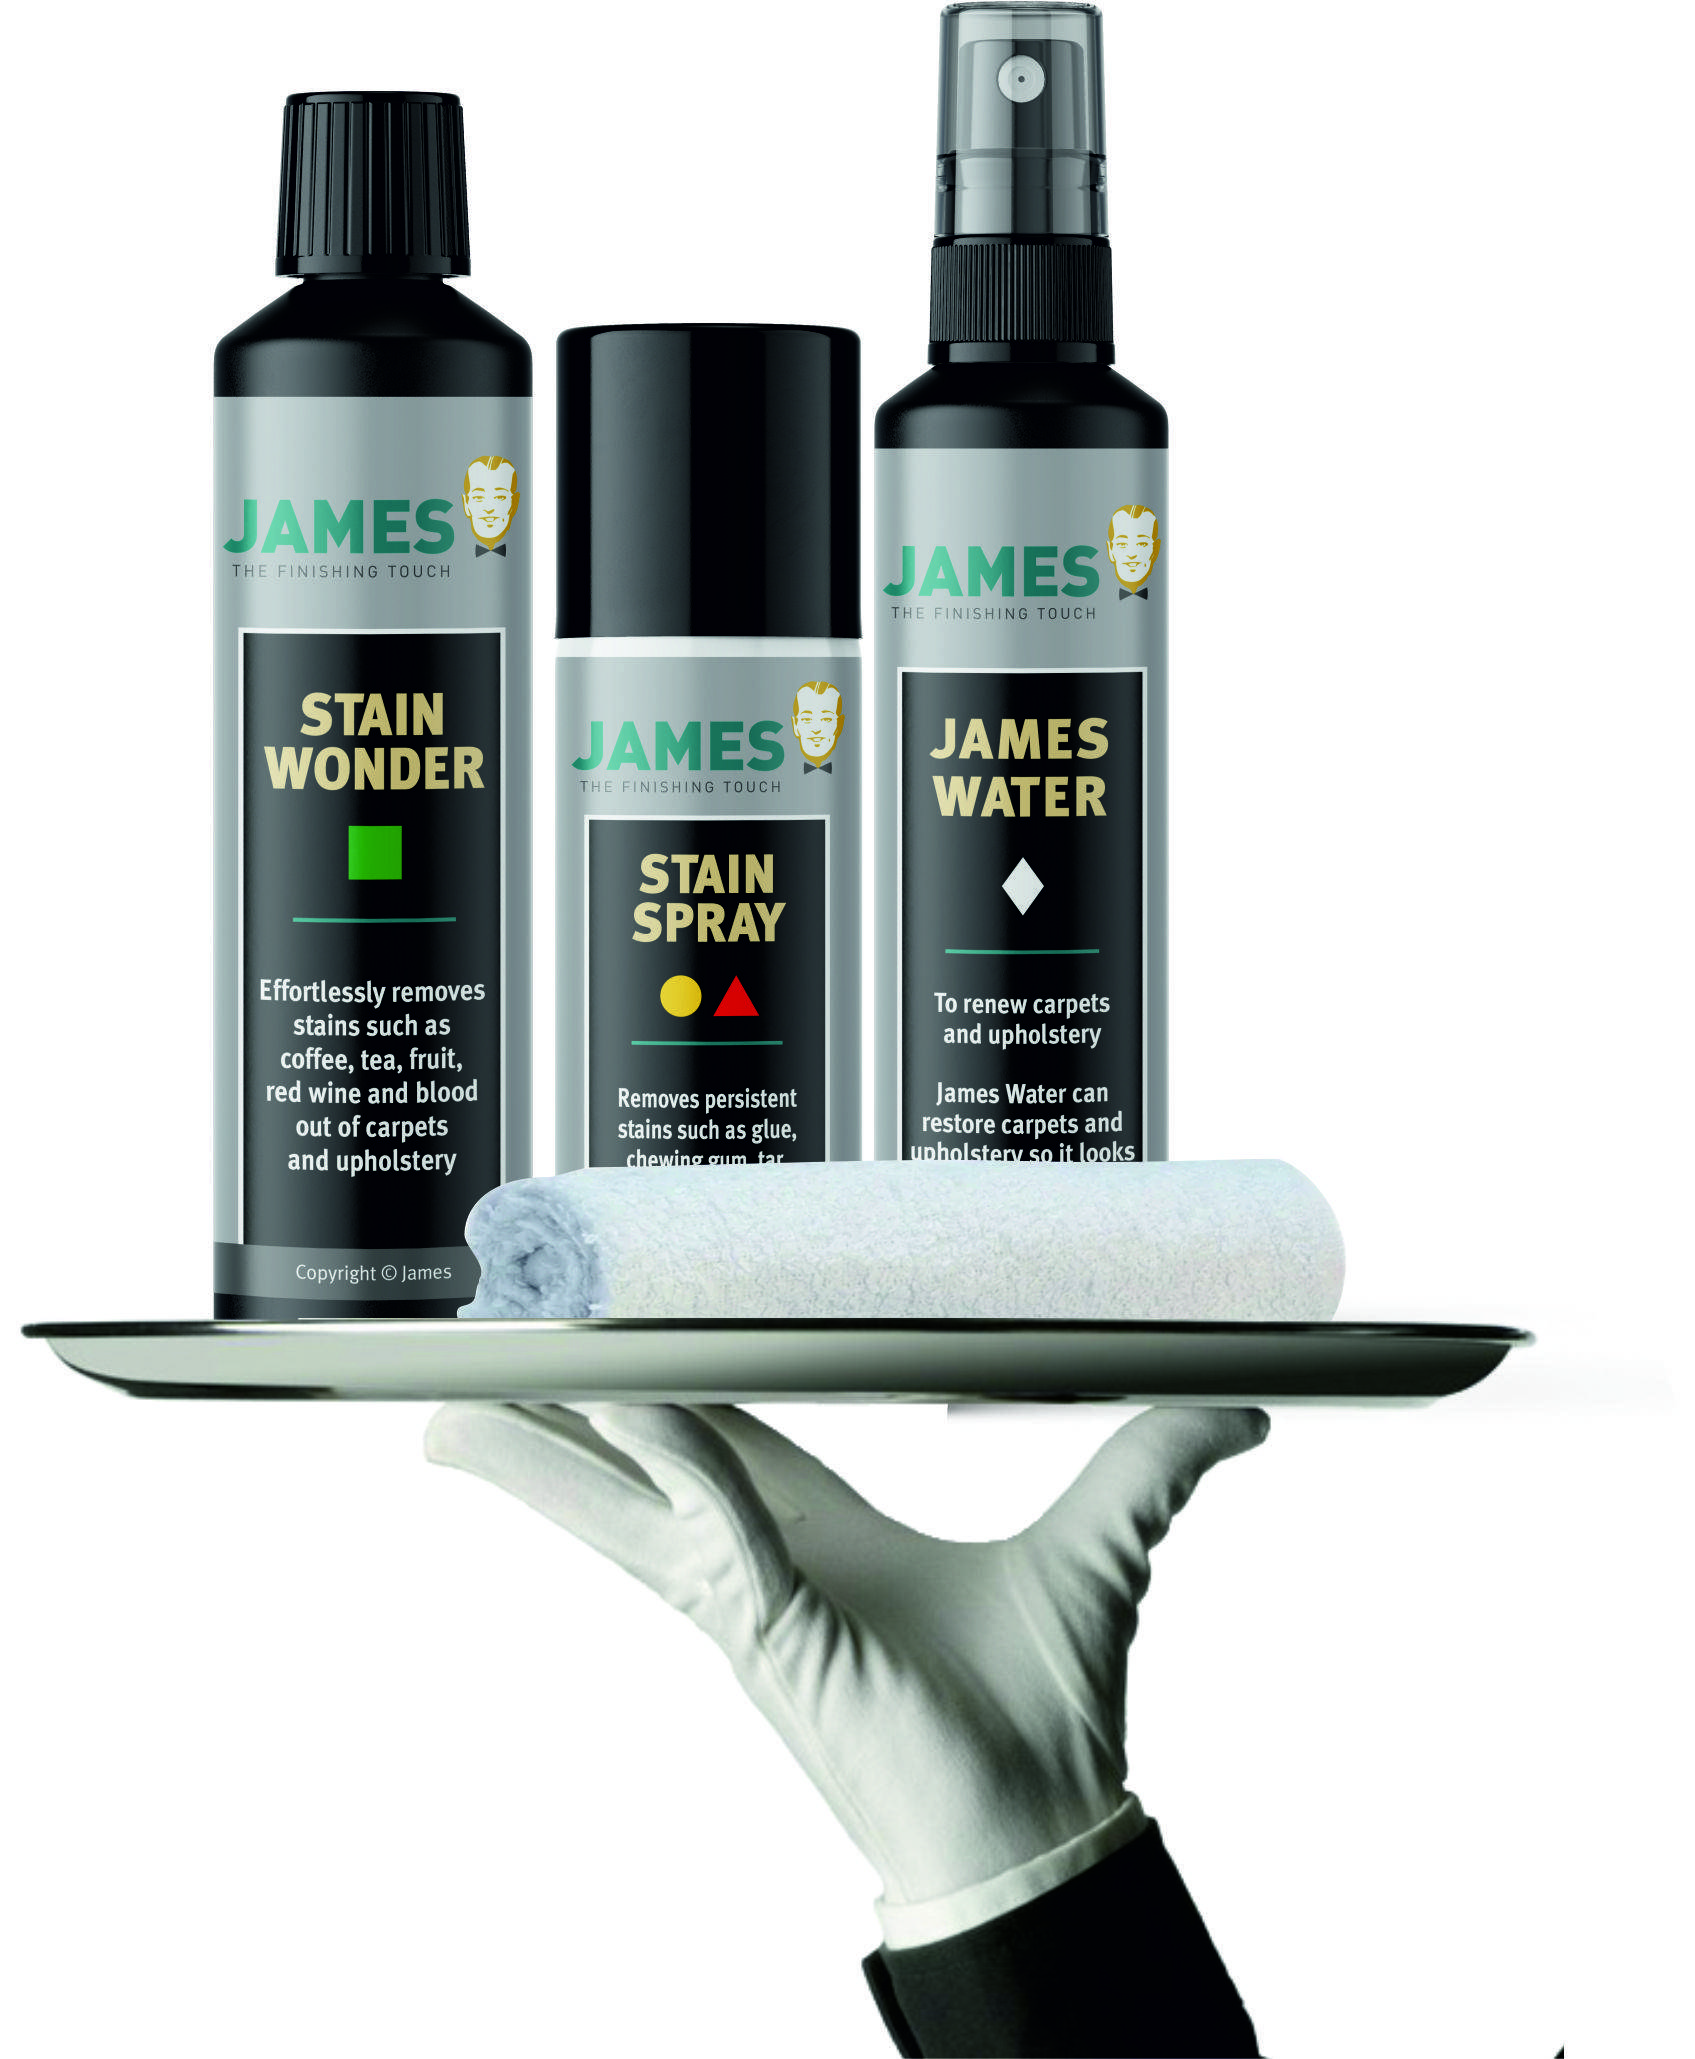 James Cleaner - James Stain Spray - The only solution for the hardest stain and soil issues on your rugs, carpet and upholstery in the James Starter Set - your Stain First Aid Kit image 3